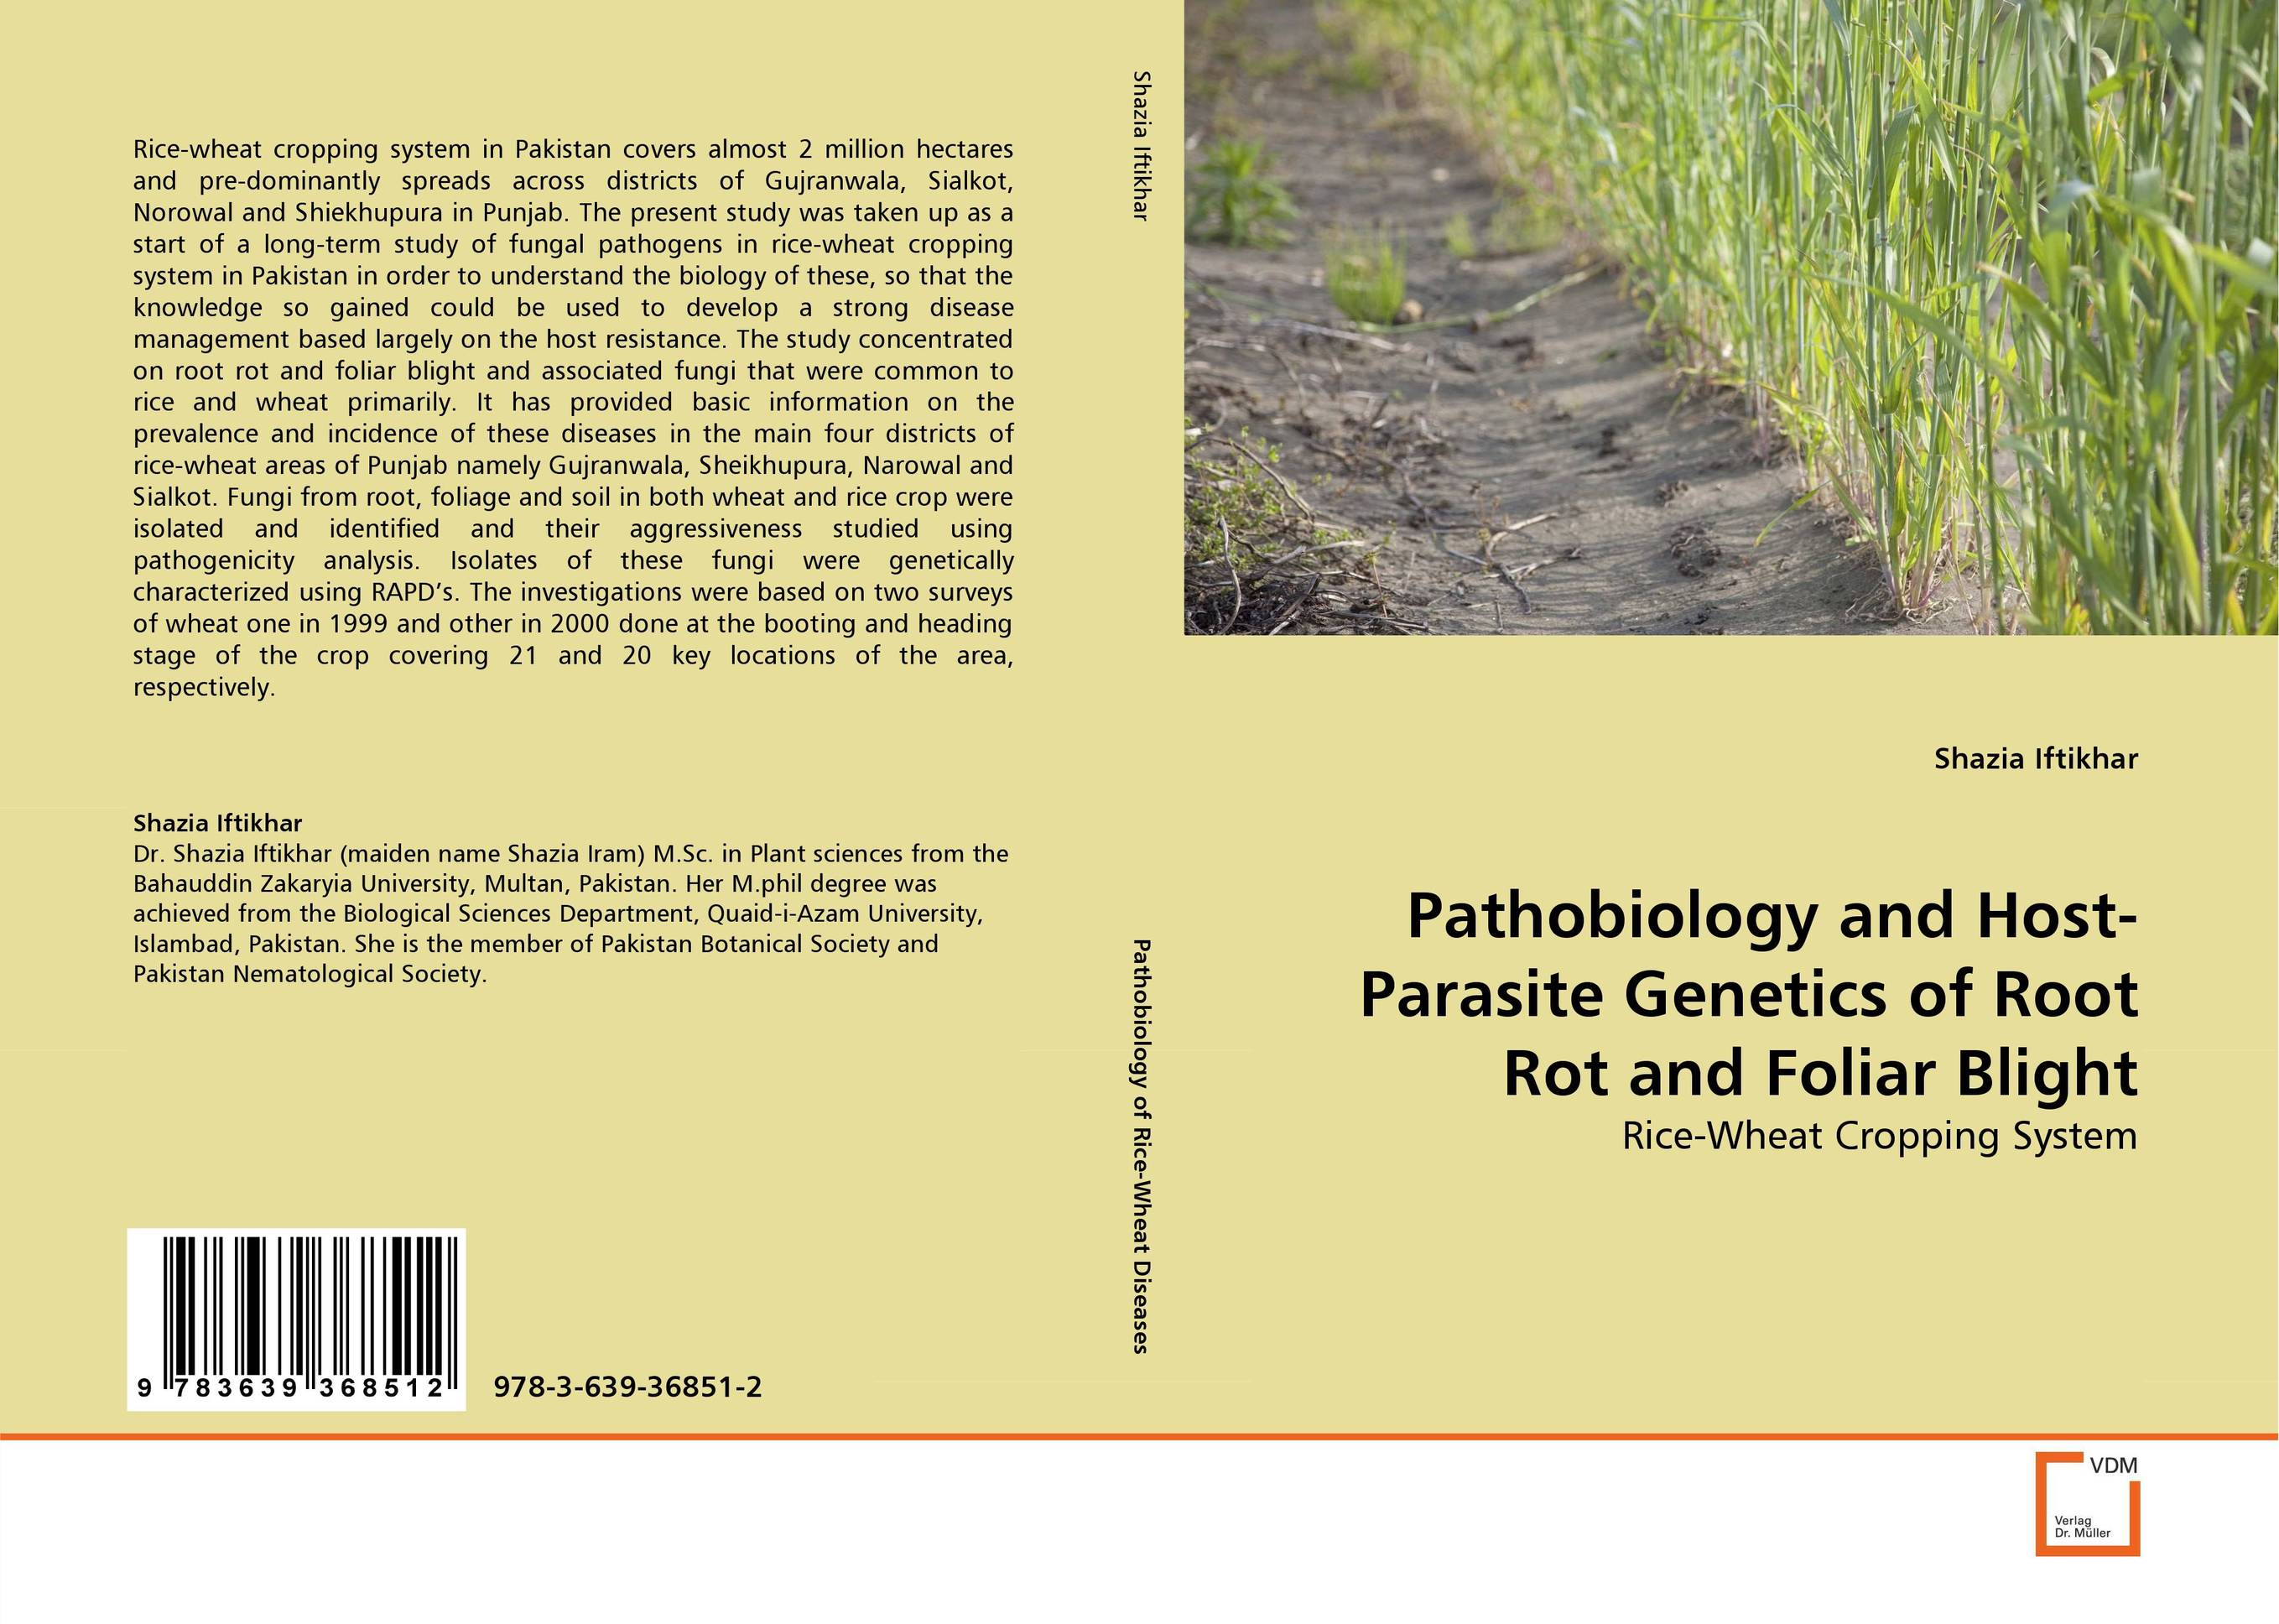 Pathobiology and Host-Parasite Genetics of Root Rot and Foliar Blight zero tillage technology in rice wheat cropping system of pakistan